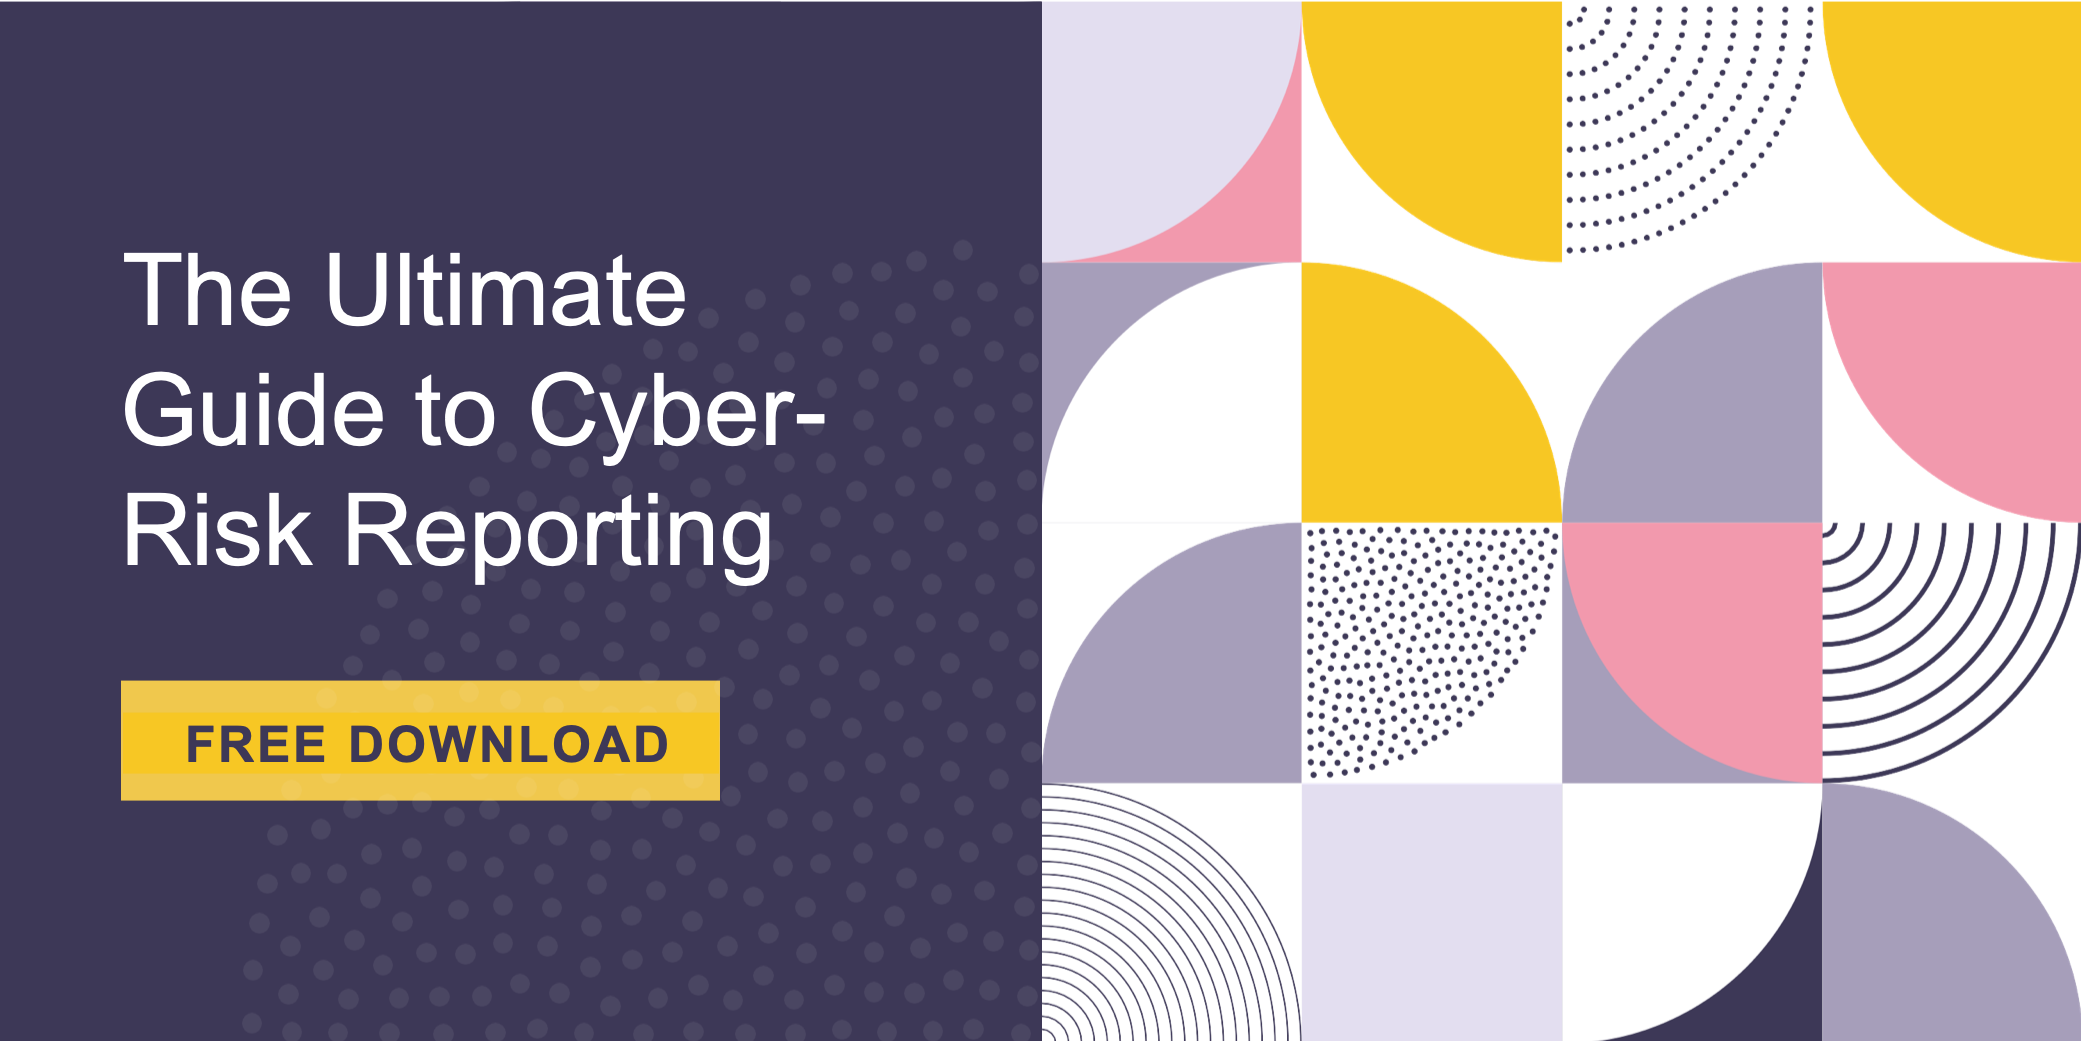 The Ultimate Guide to Cyber-Risk Reporting